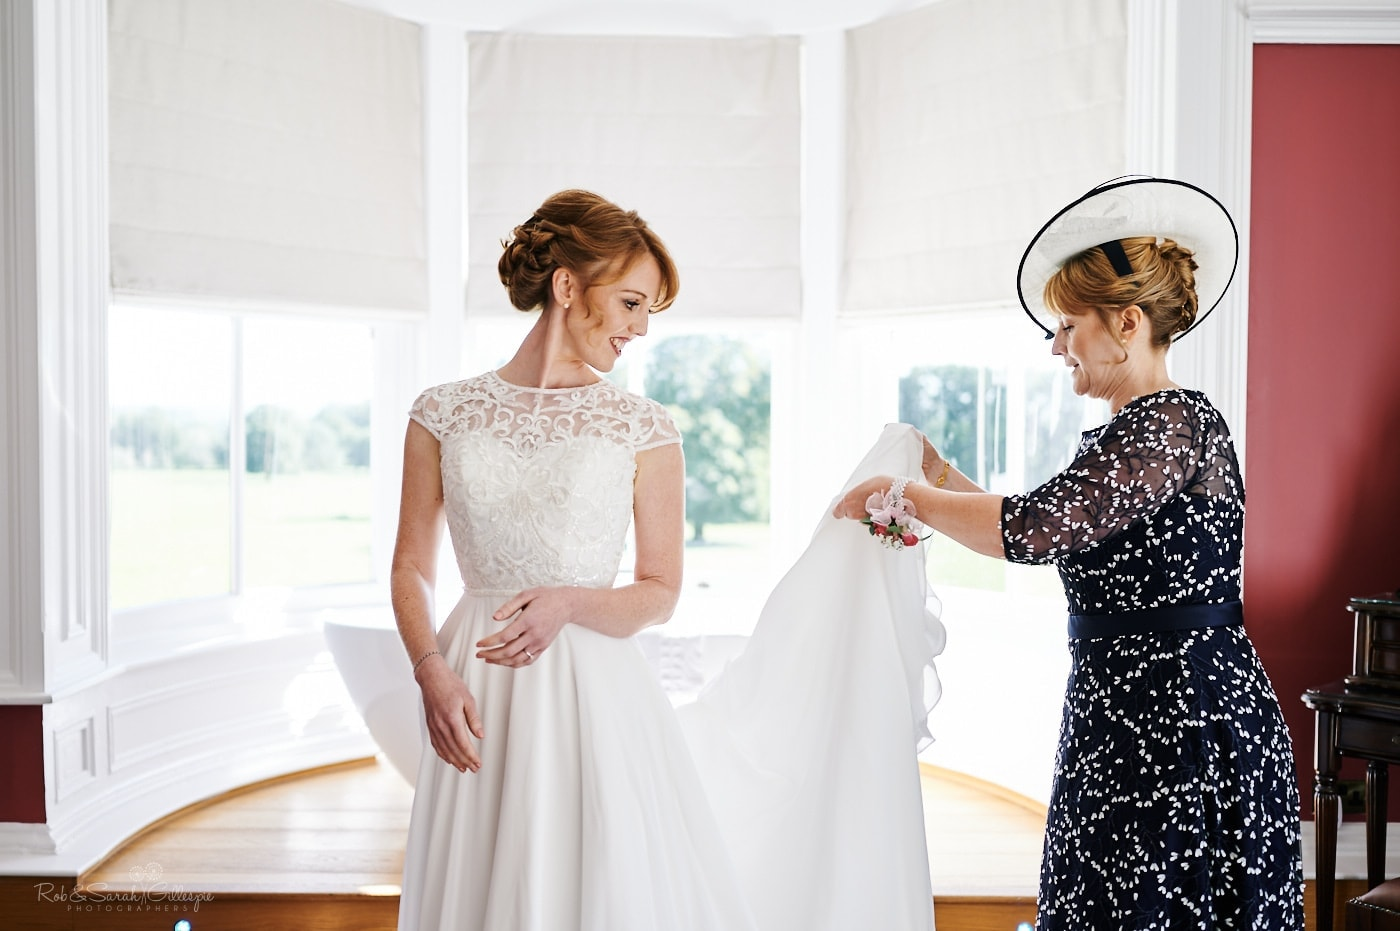 Bride and her mother adjust wedding dress in front of large window